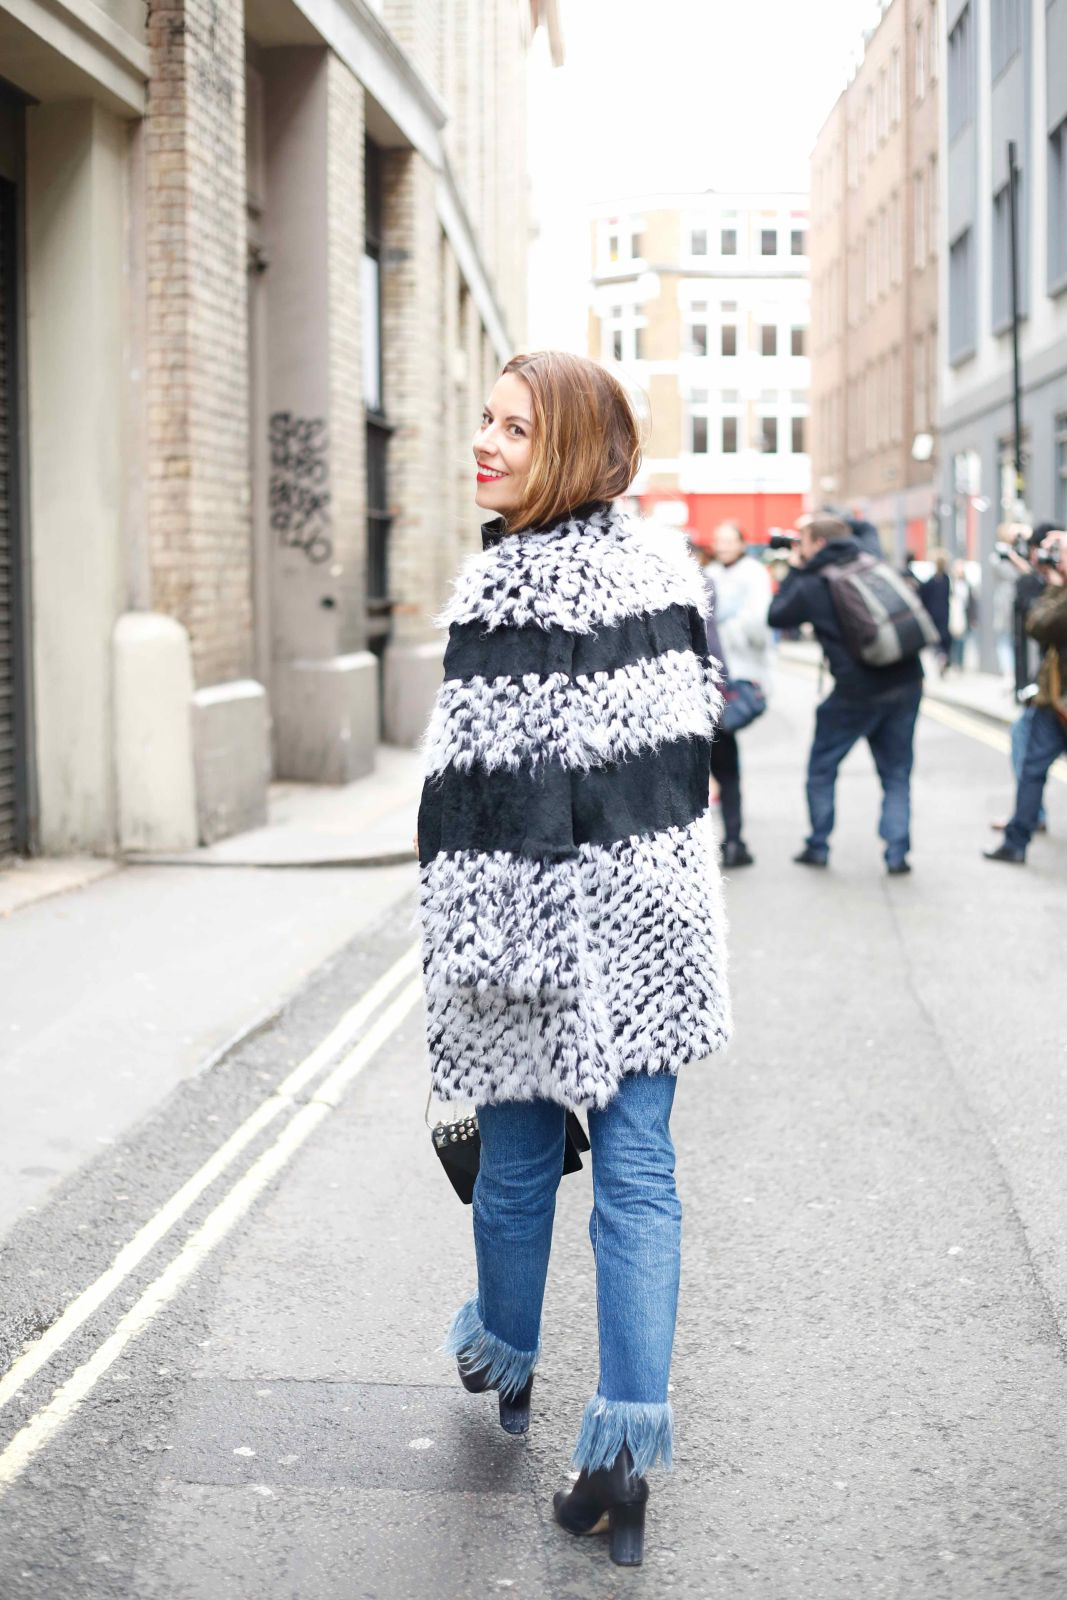 3x1, linda richards, bluefly, shopbop, fringe denim, london fashion week, #thelondonstylist, juliet angus